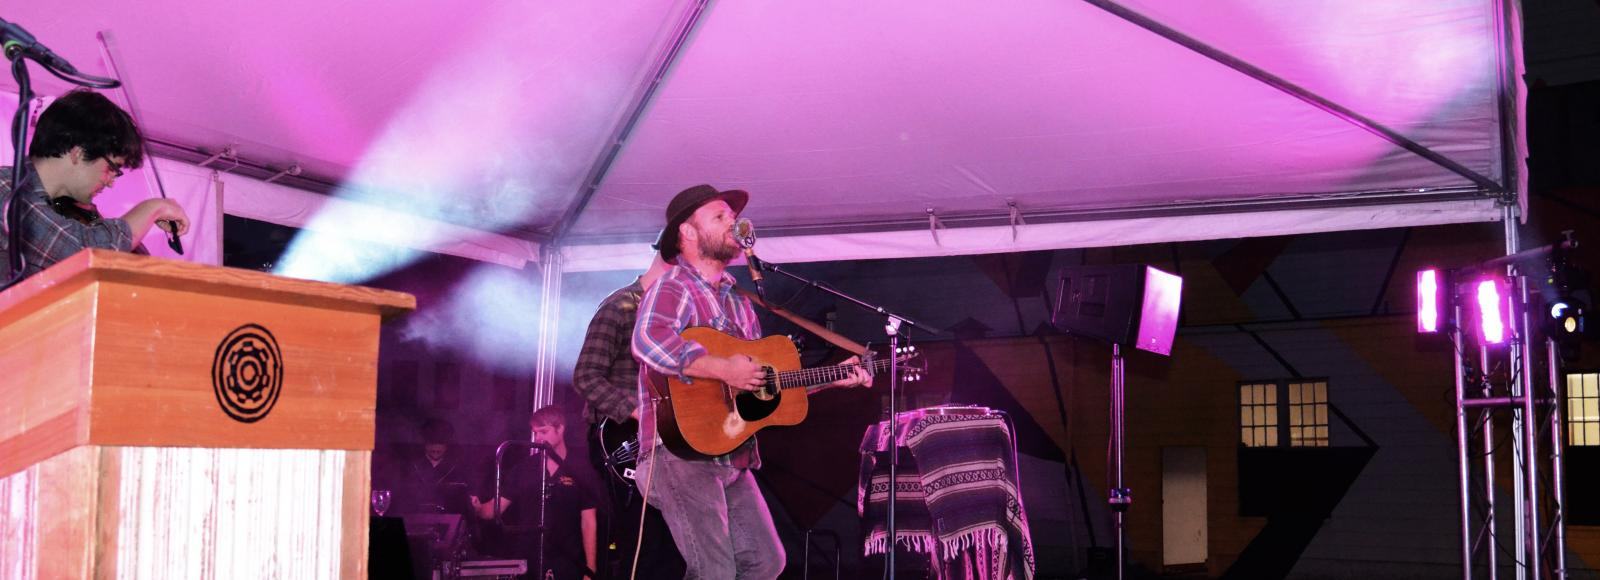 Man wearing plaid shirt and hat plays guitar on a pink-lit stage at night